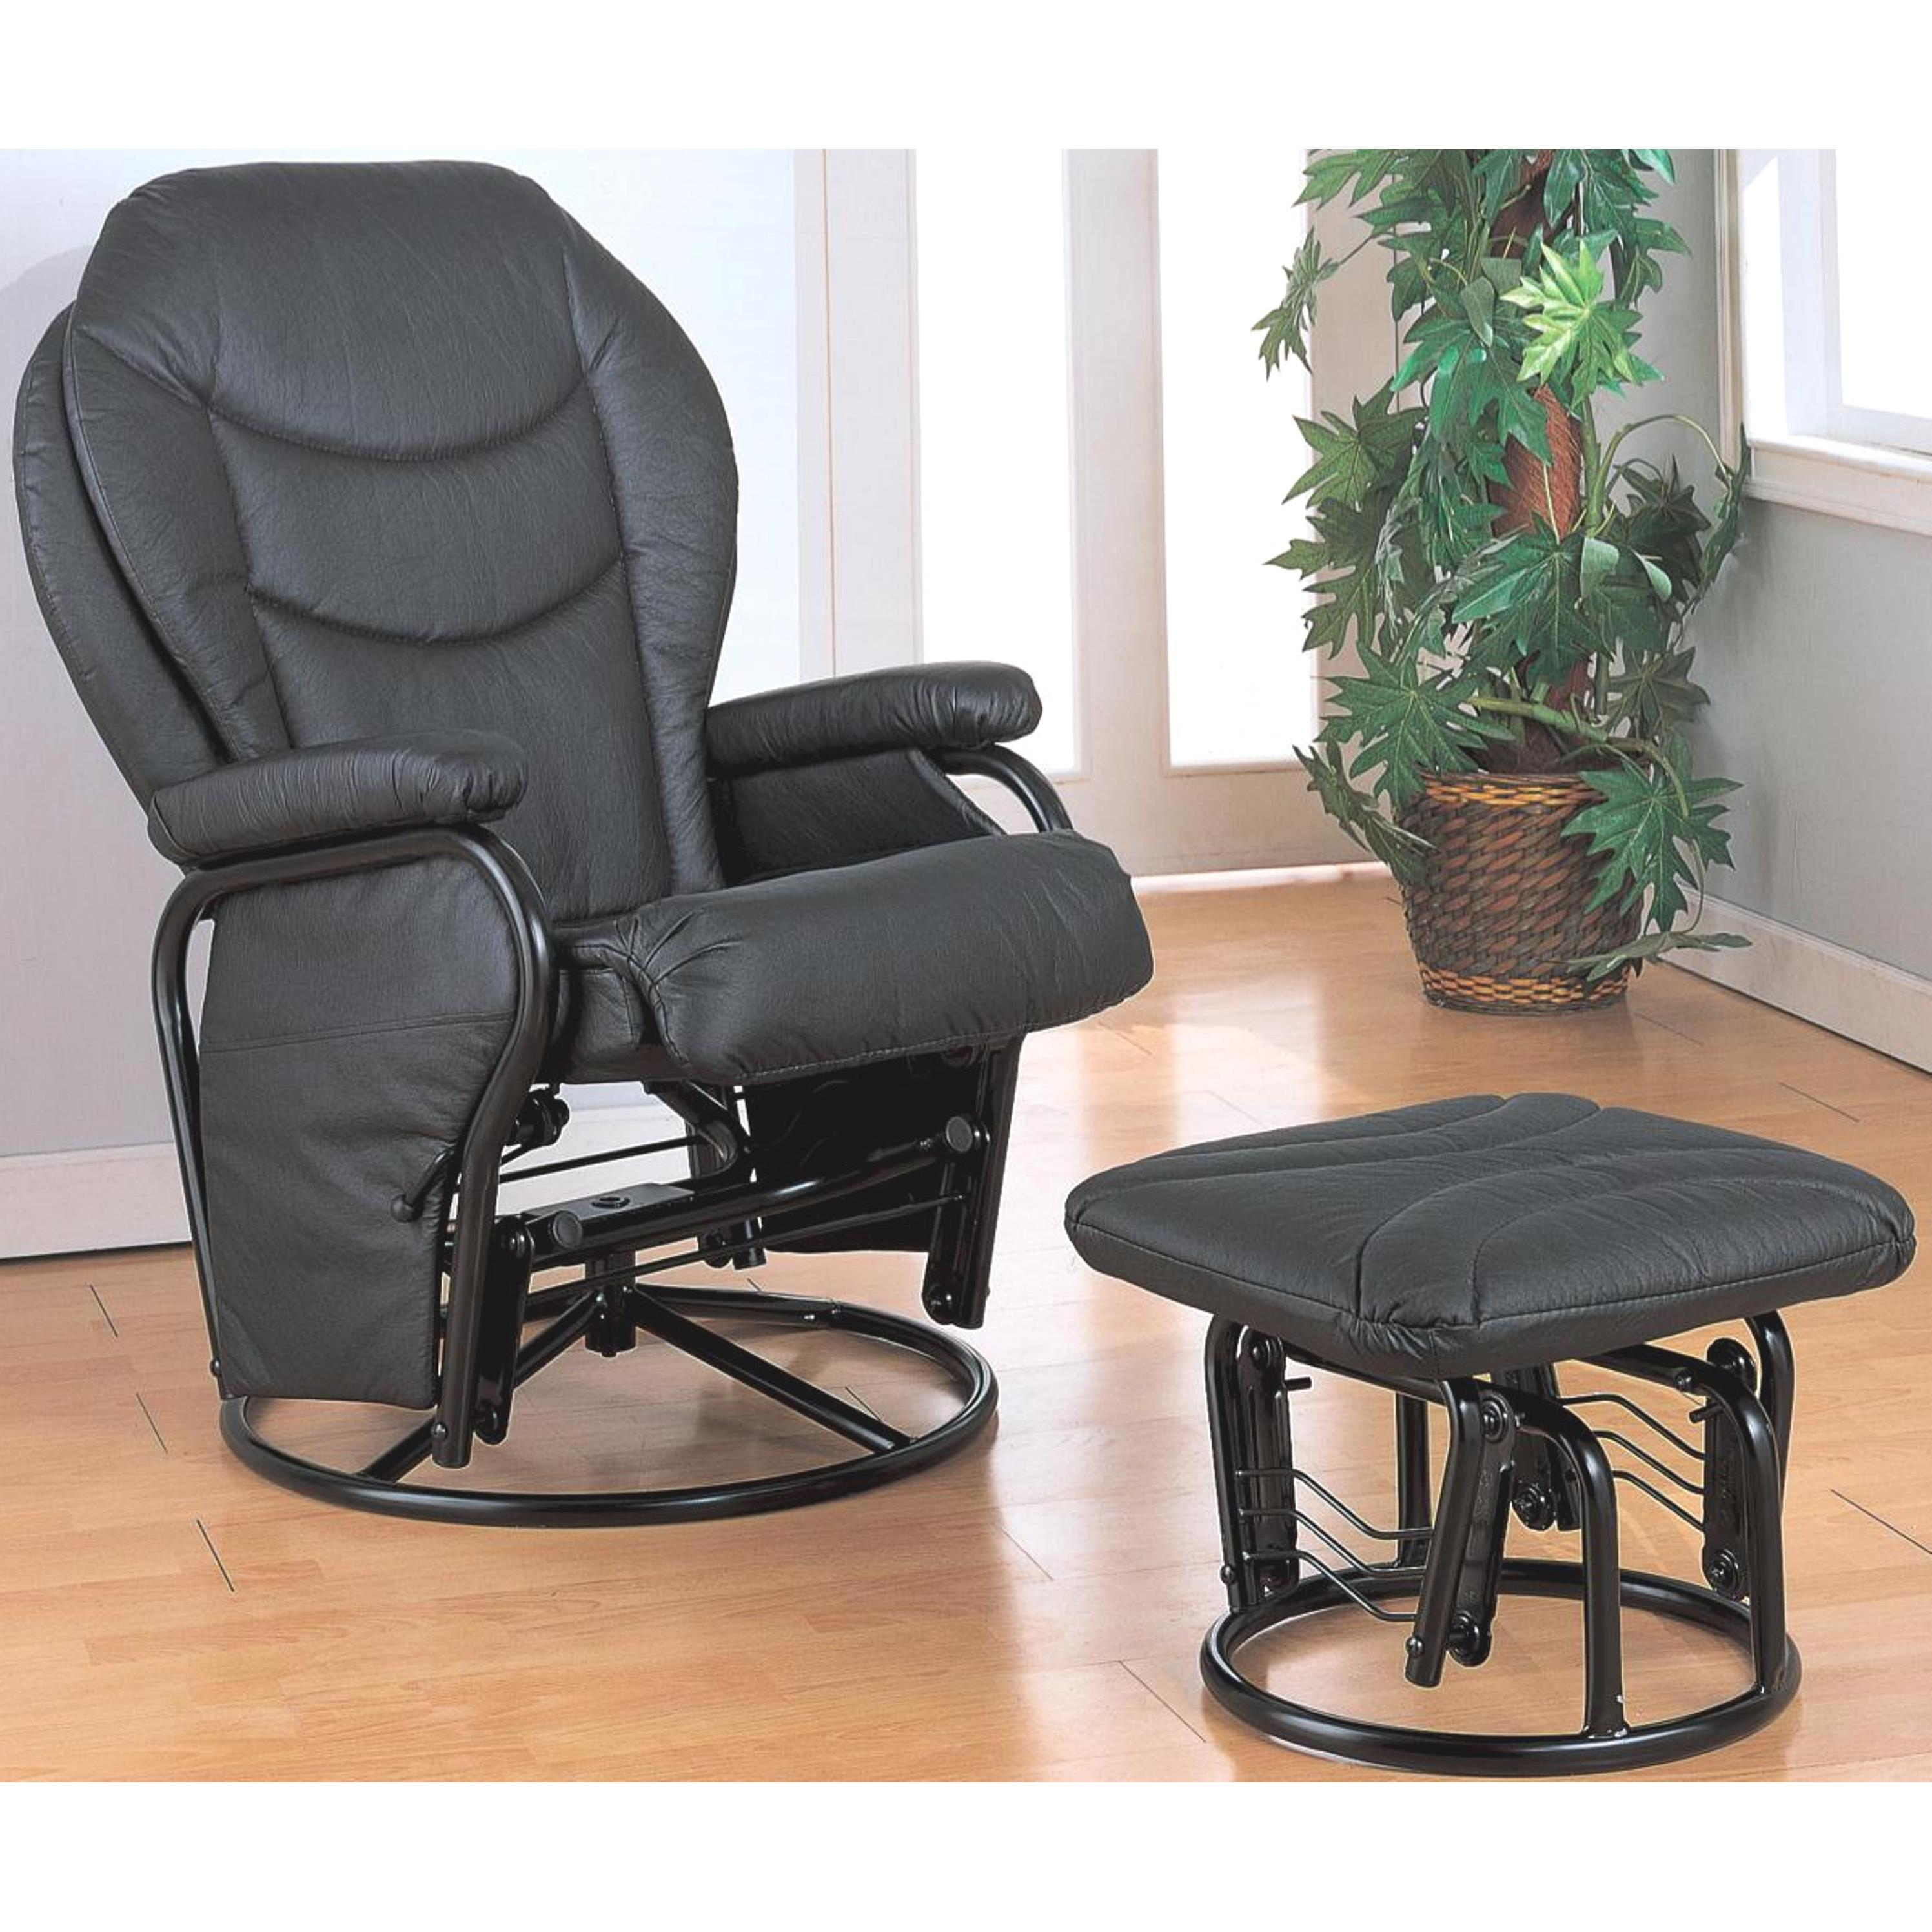 A Line Furniture Ollius Swivel Glider Recliner Ottoman Set